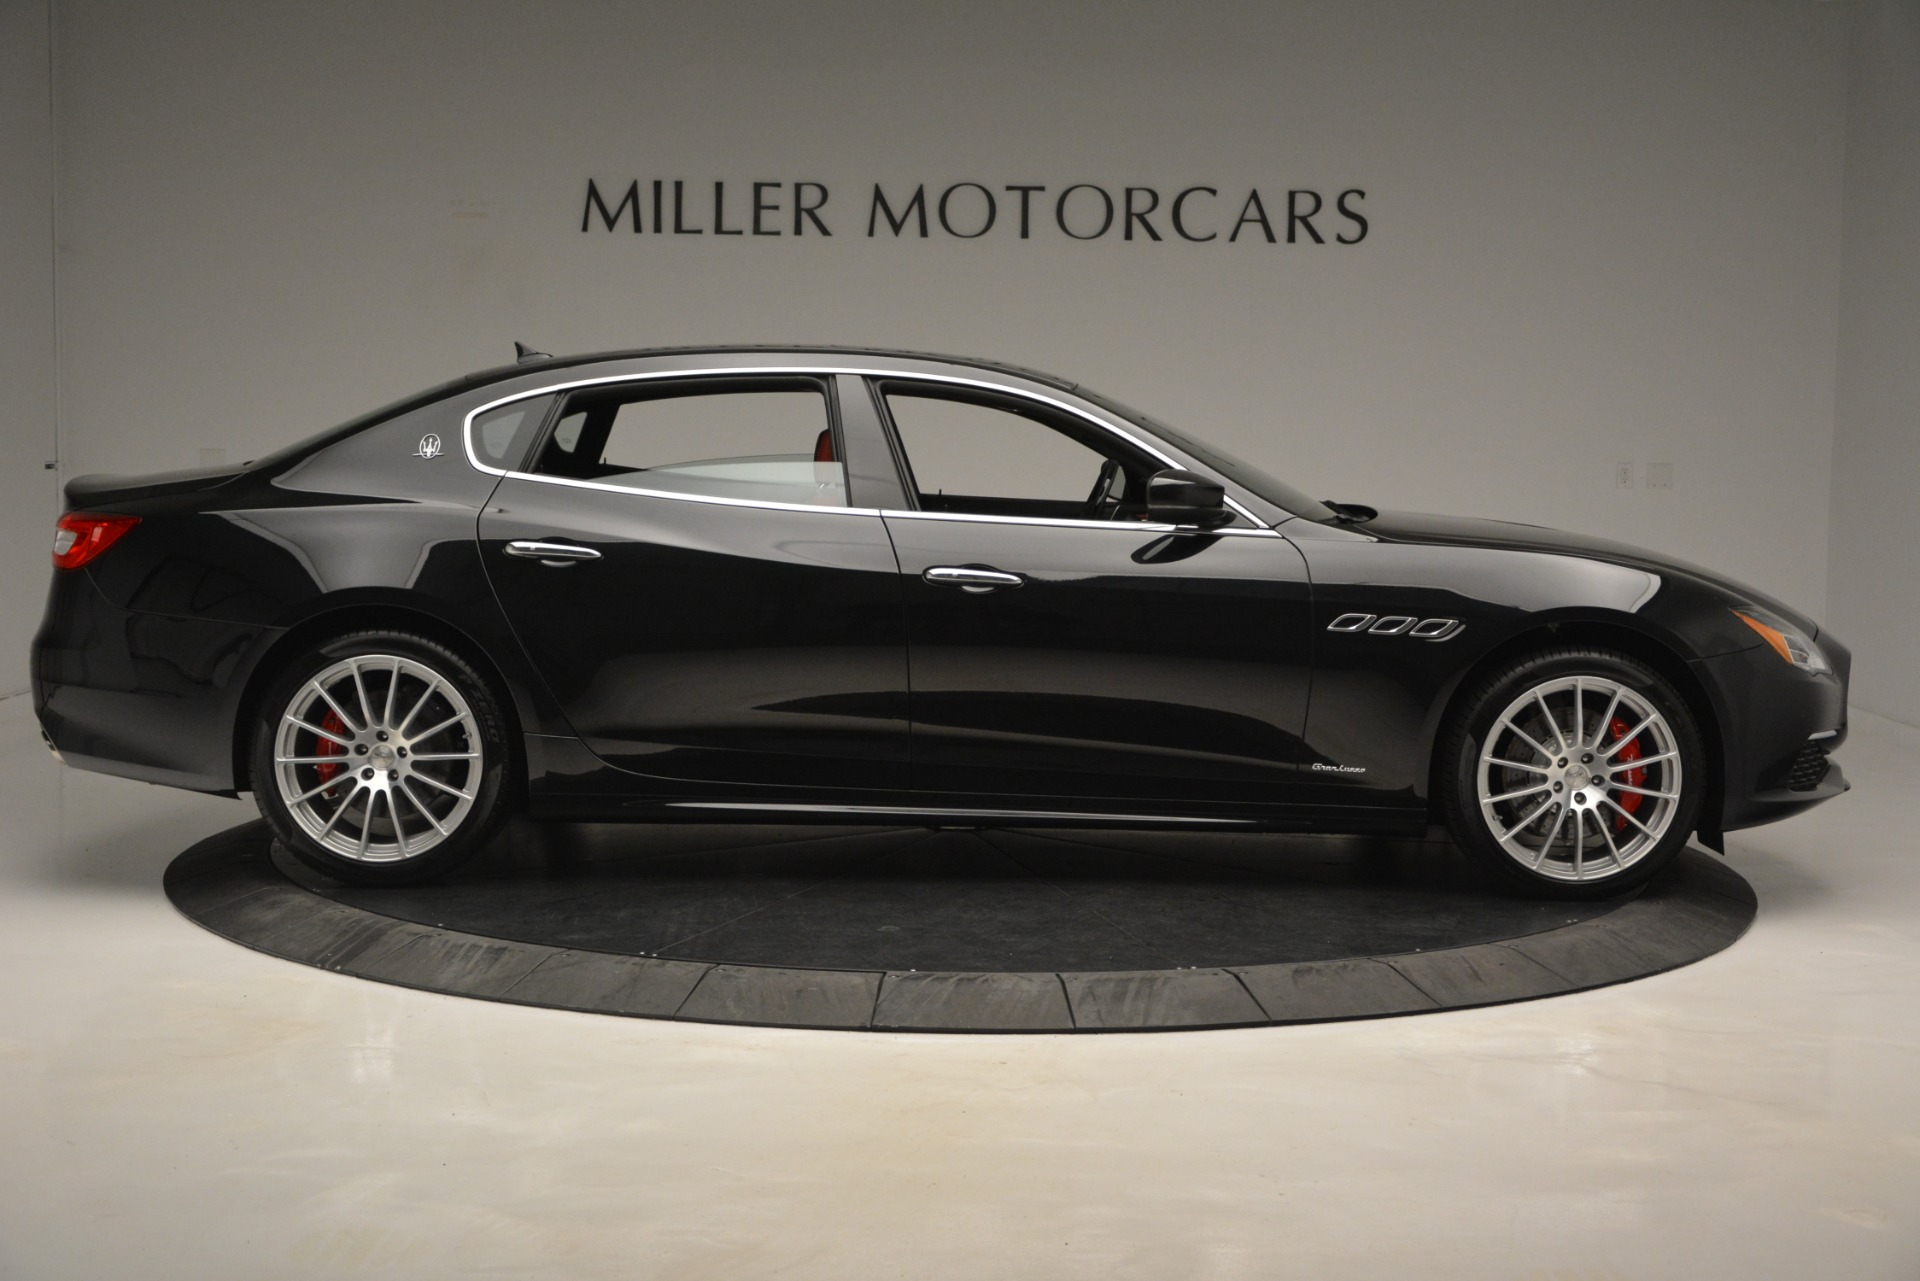 New 2019 Maserati Quattroporte S Q4 GranLusso For Sale In Greenwich, CT 2718_p9